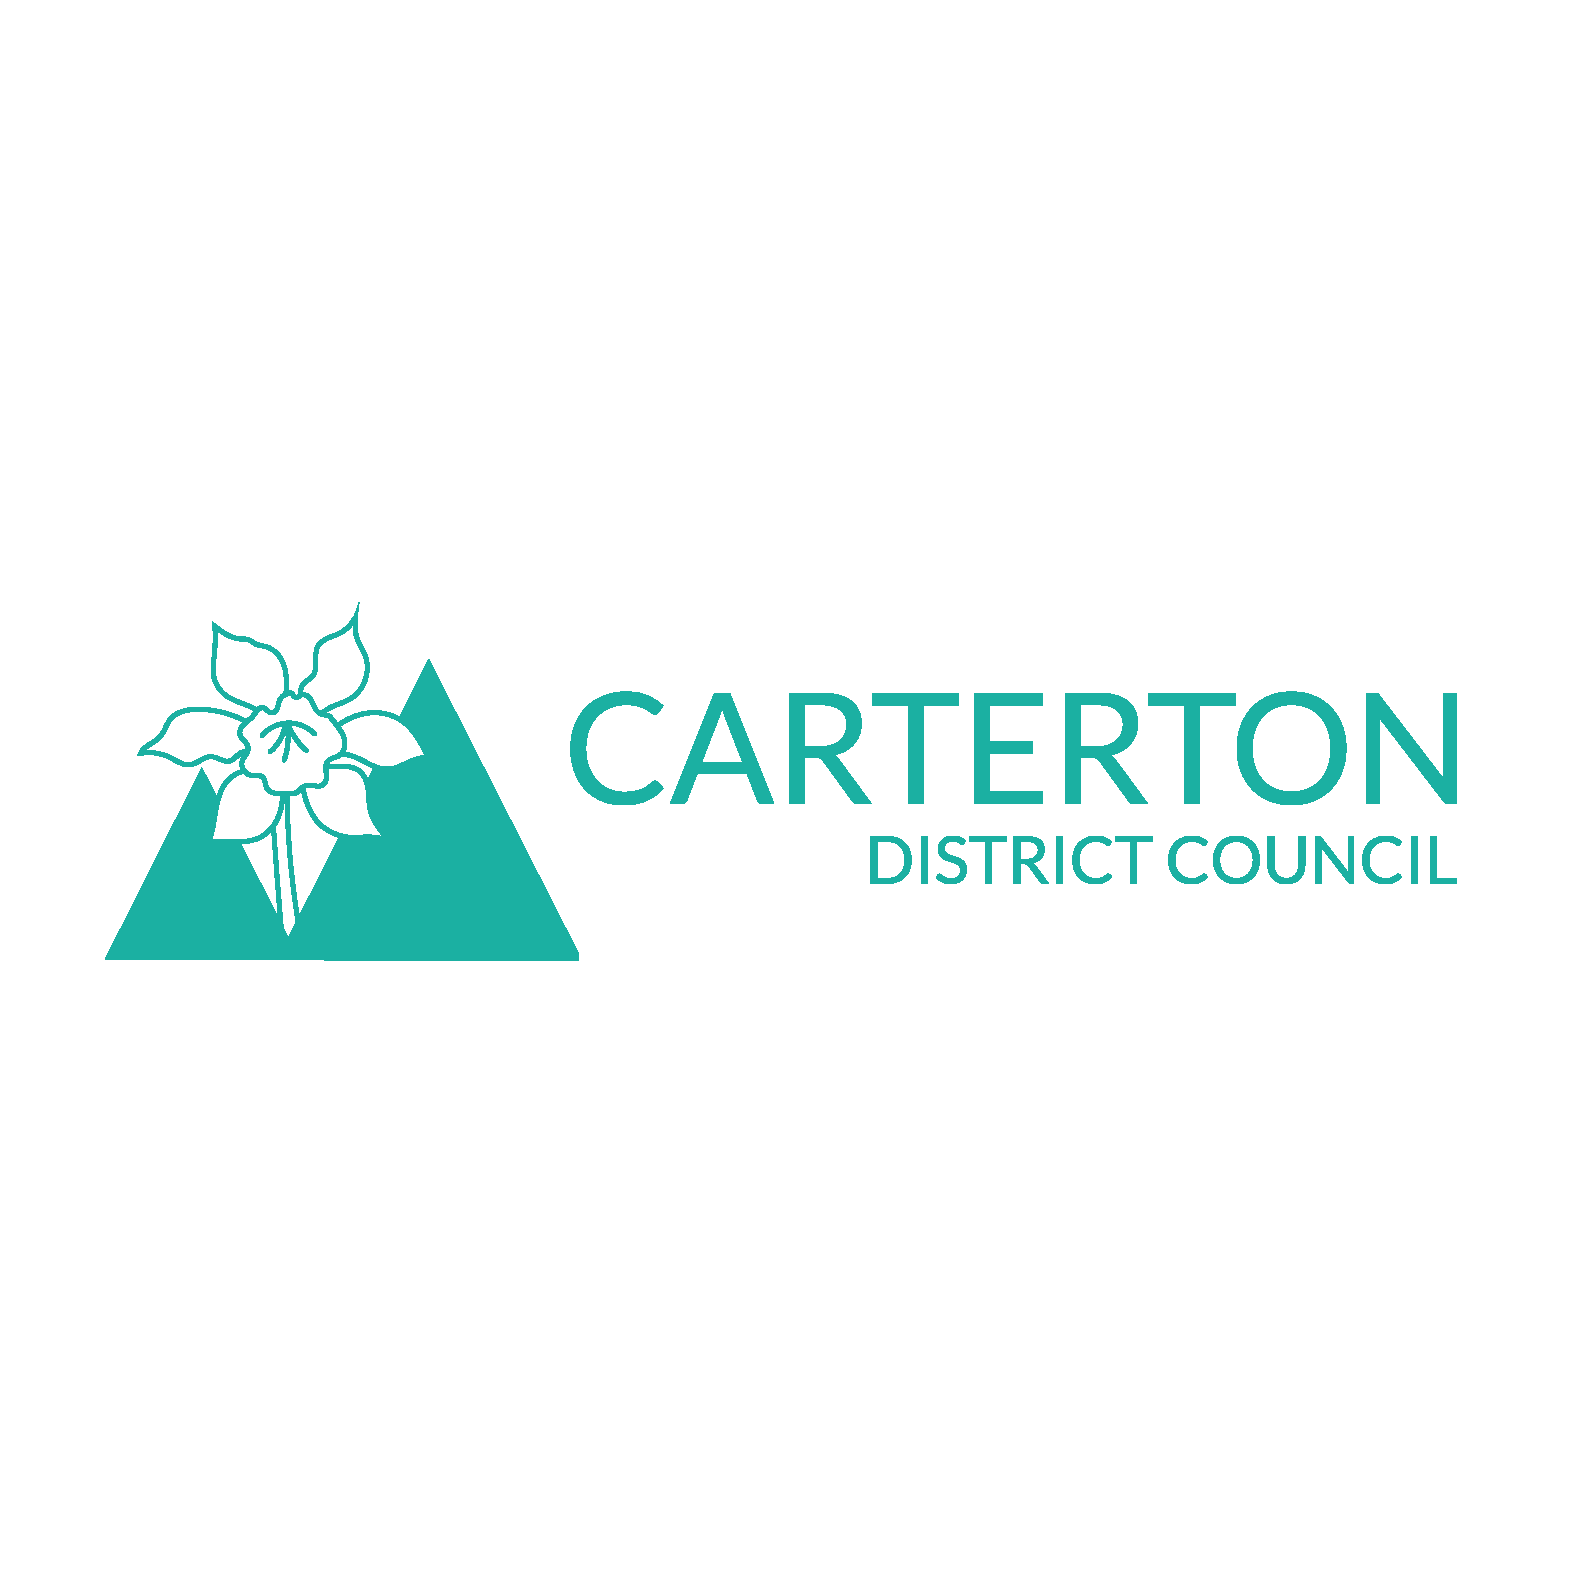 carterton-district-council-logo-white-2016-square-teal - high res.jpg.jpg